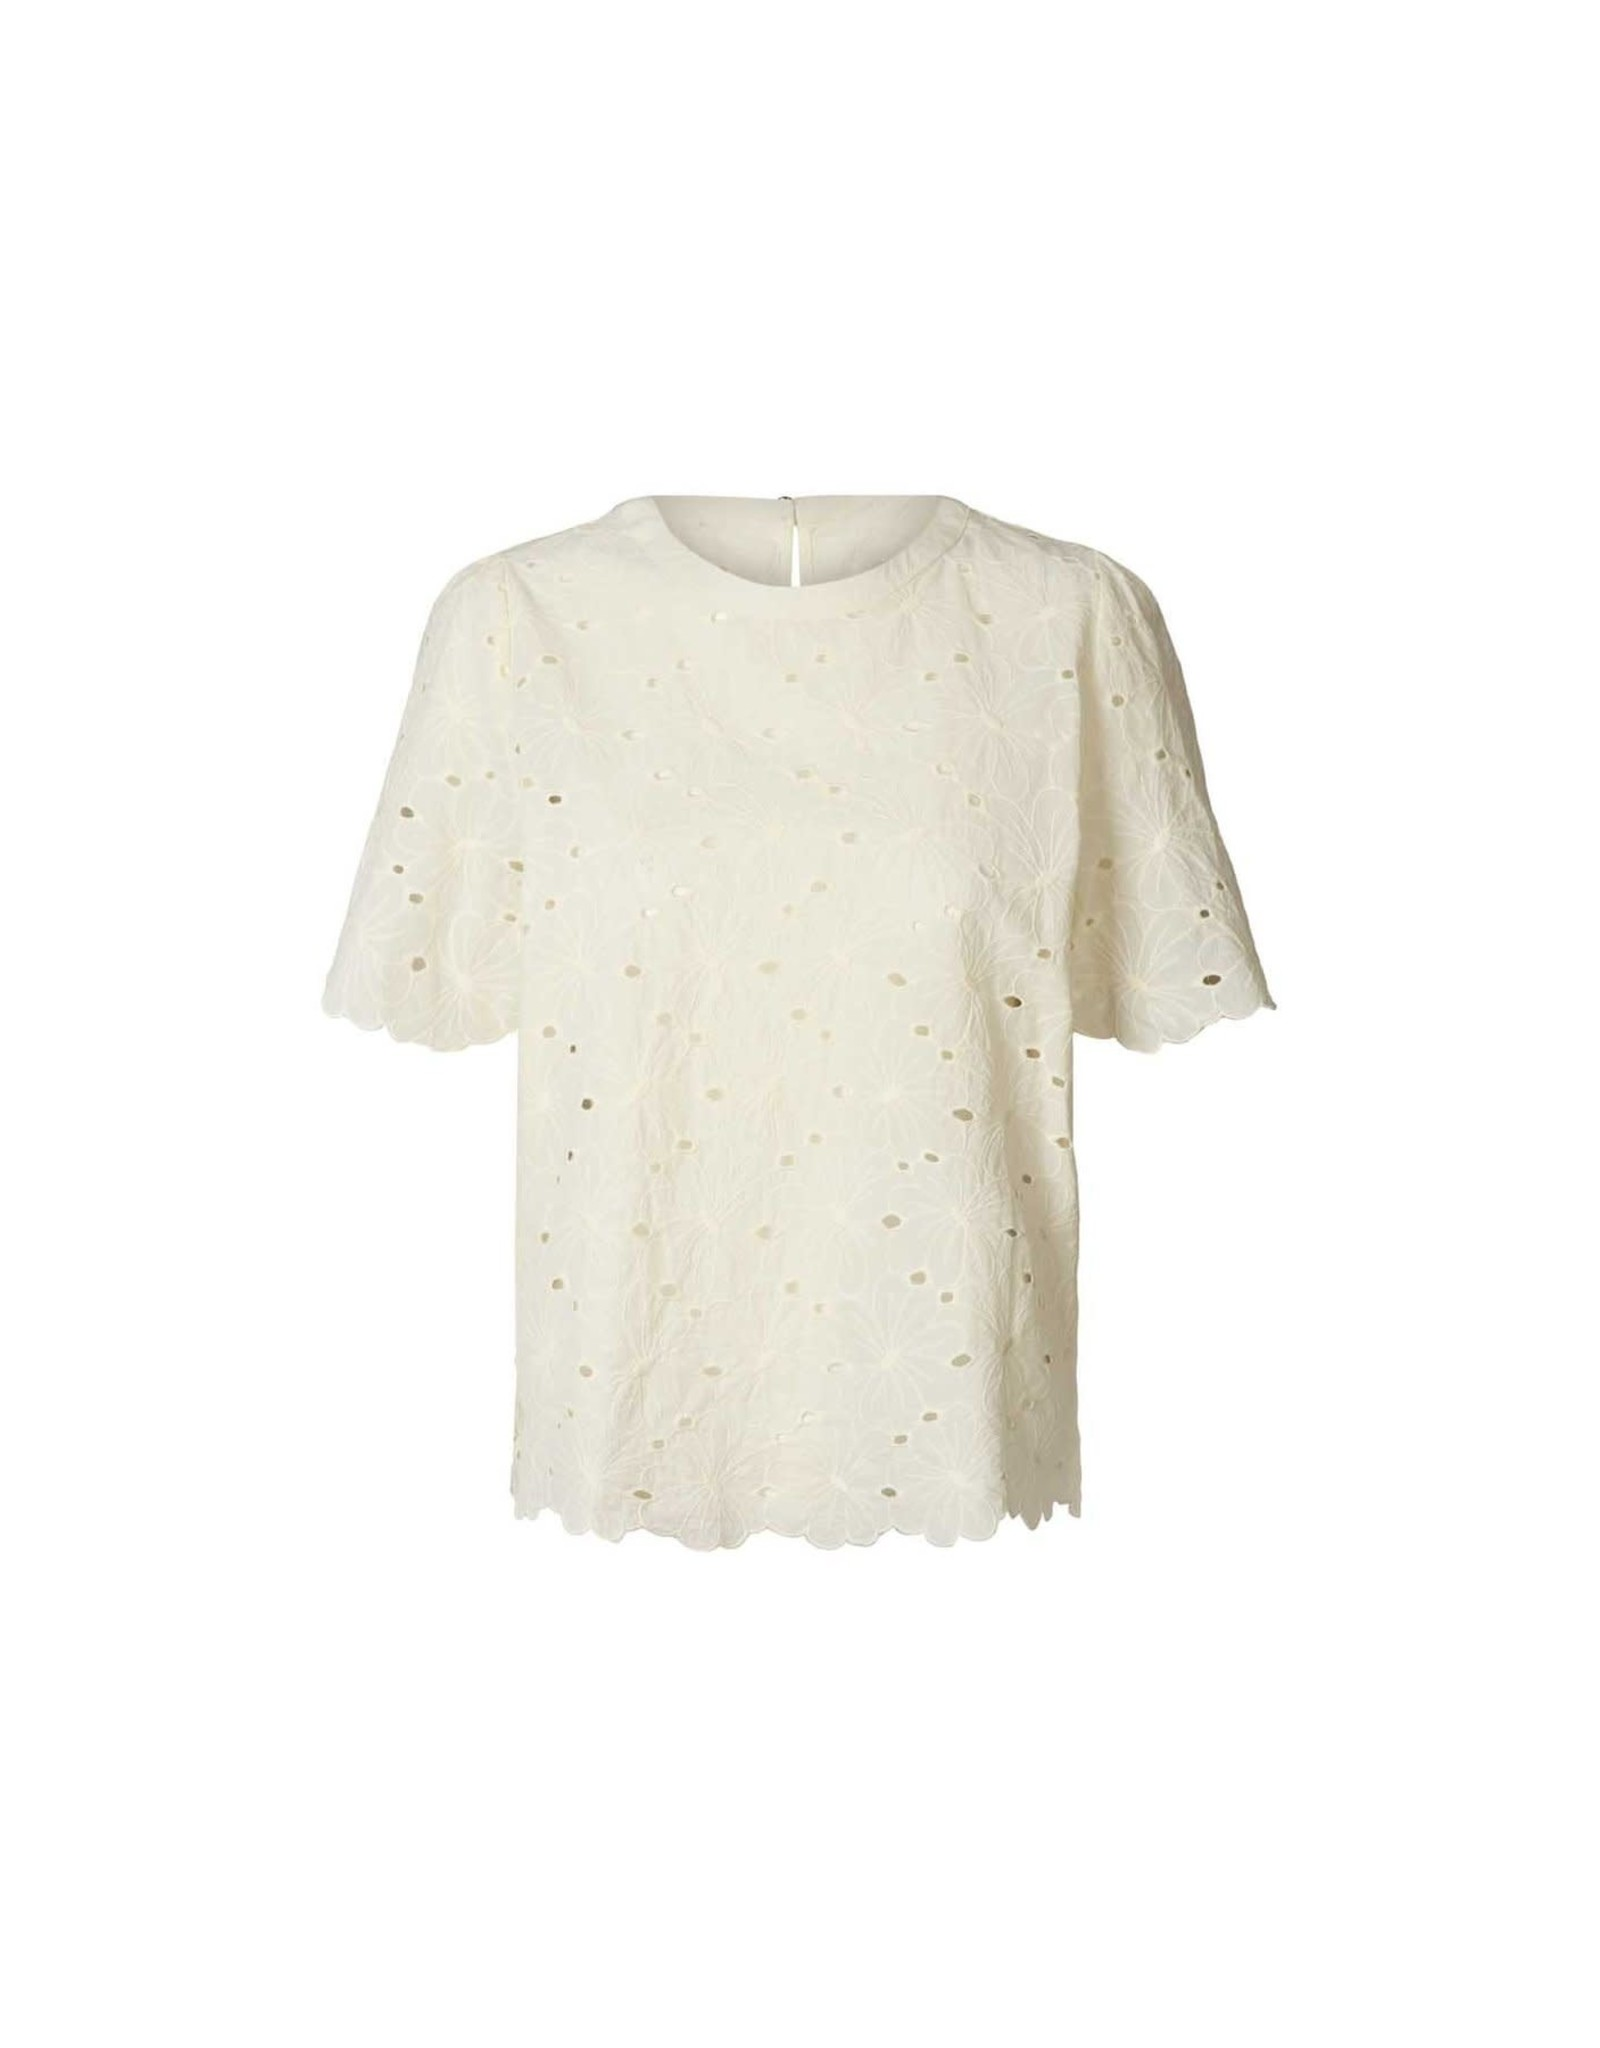 Lolly's Laundry Christina Blouse